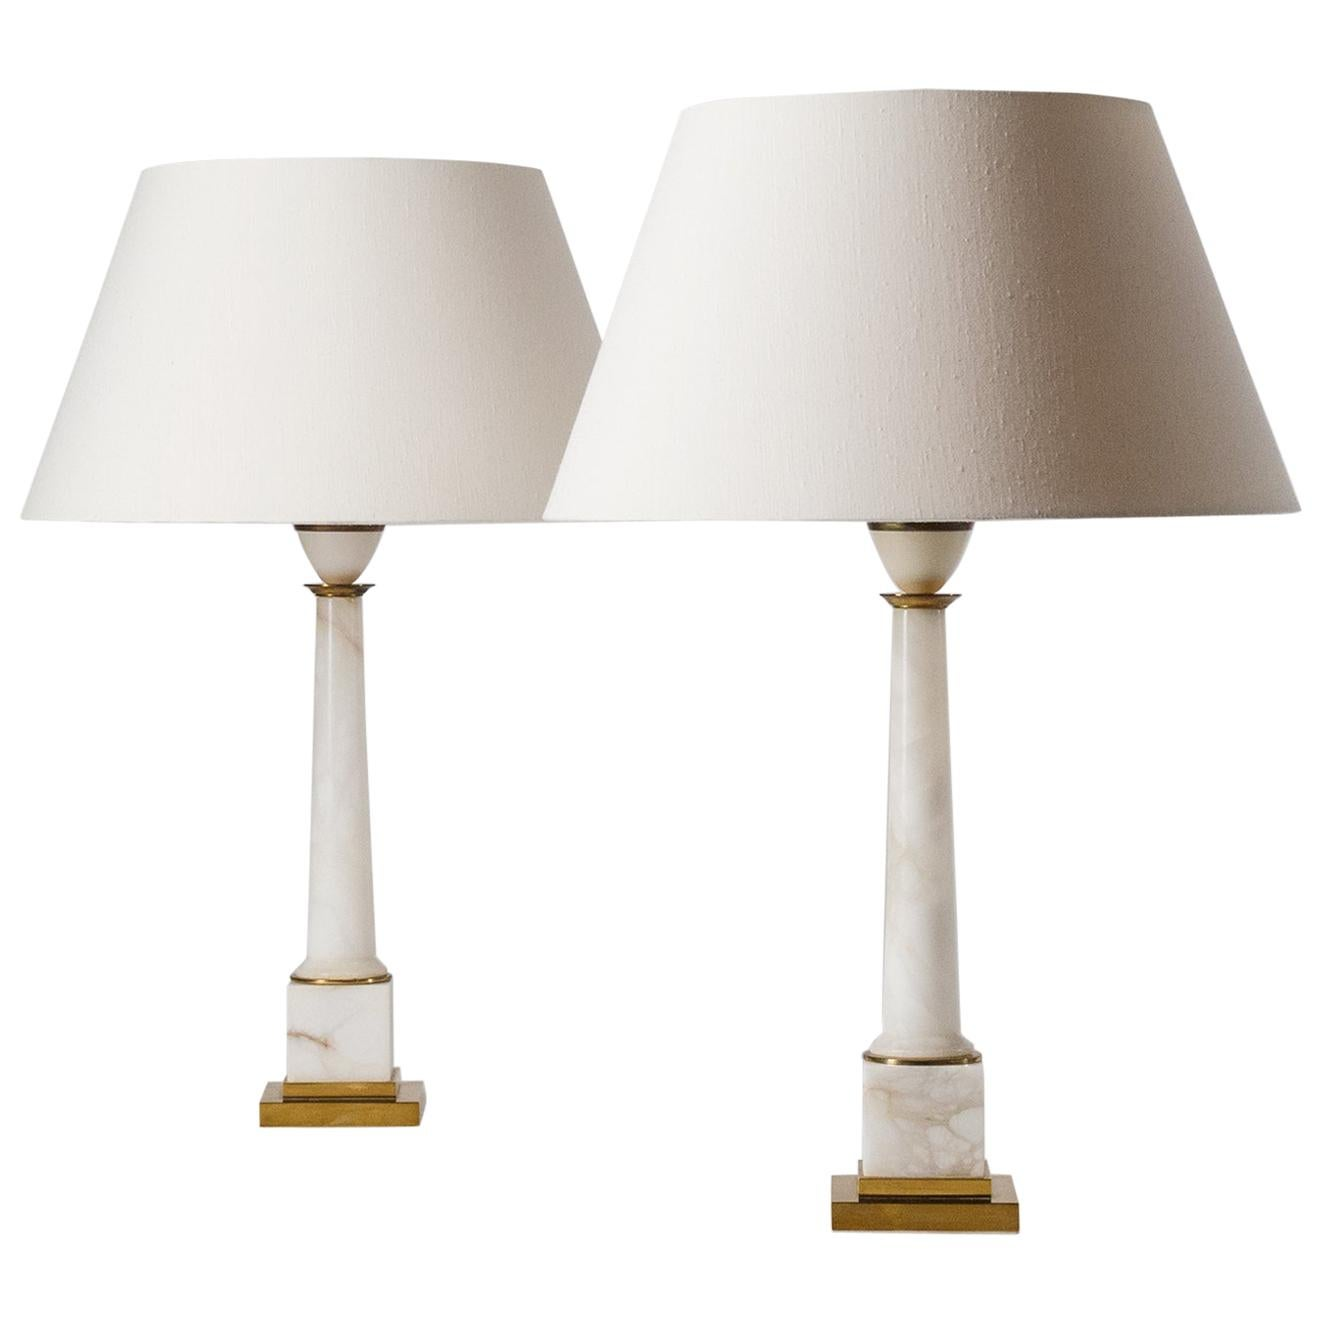 Pair of Marble Column Table Lamps, circa 1970